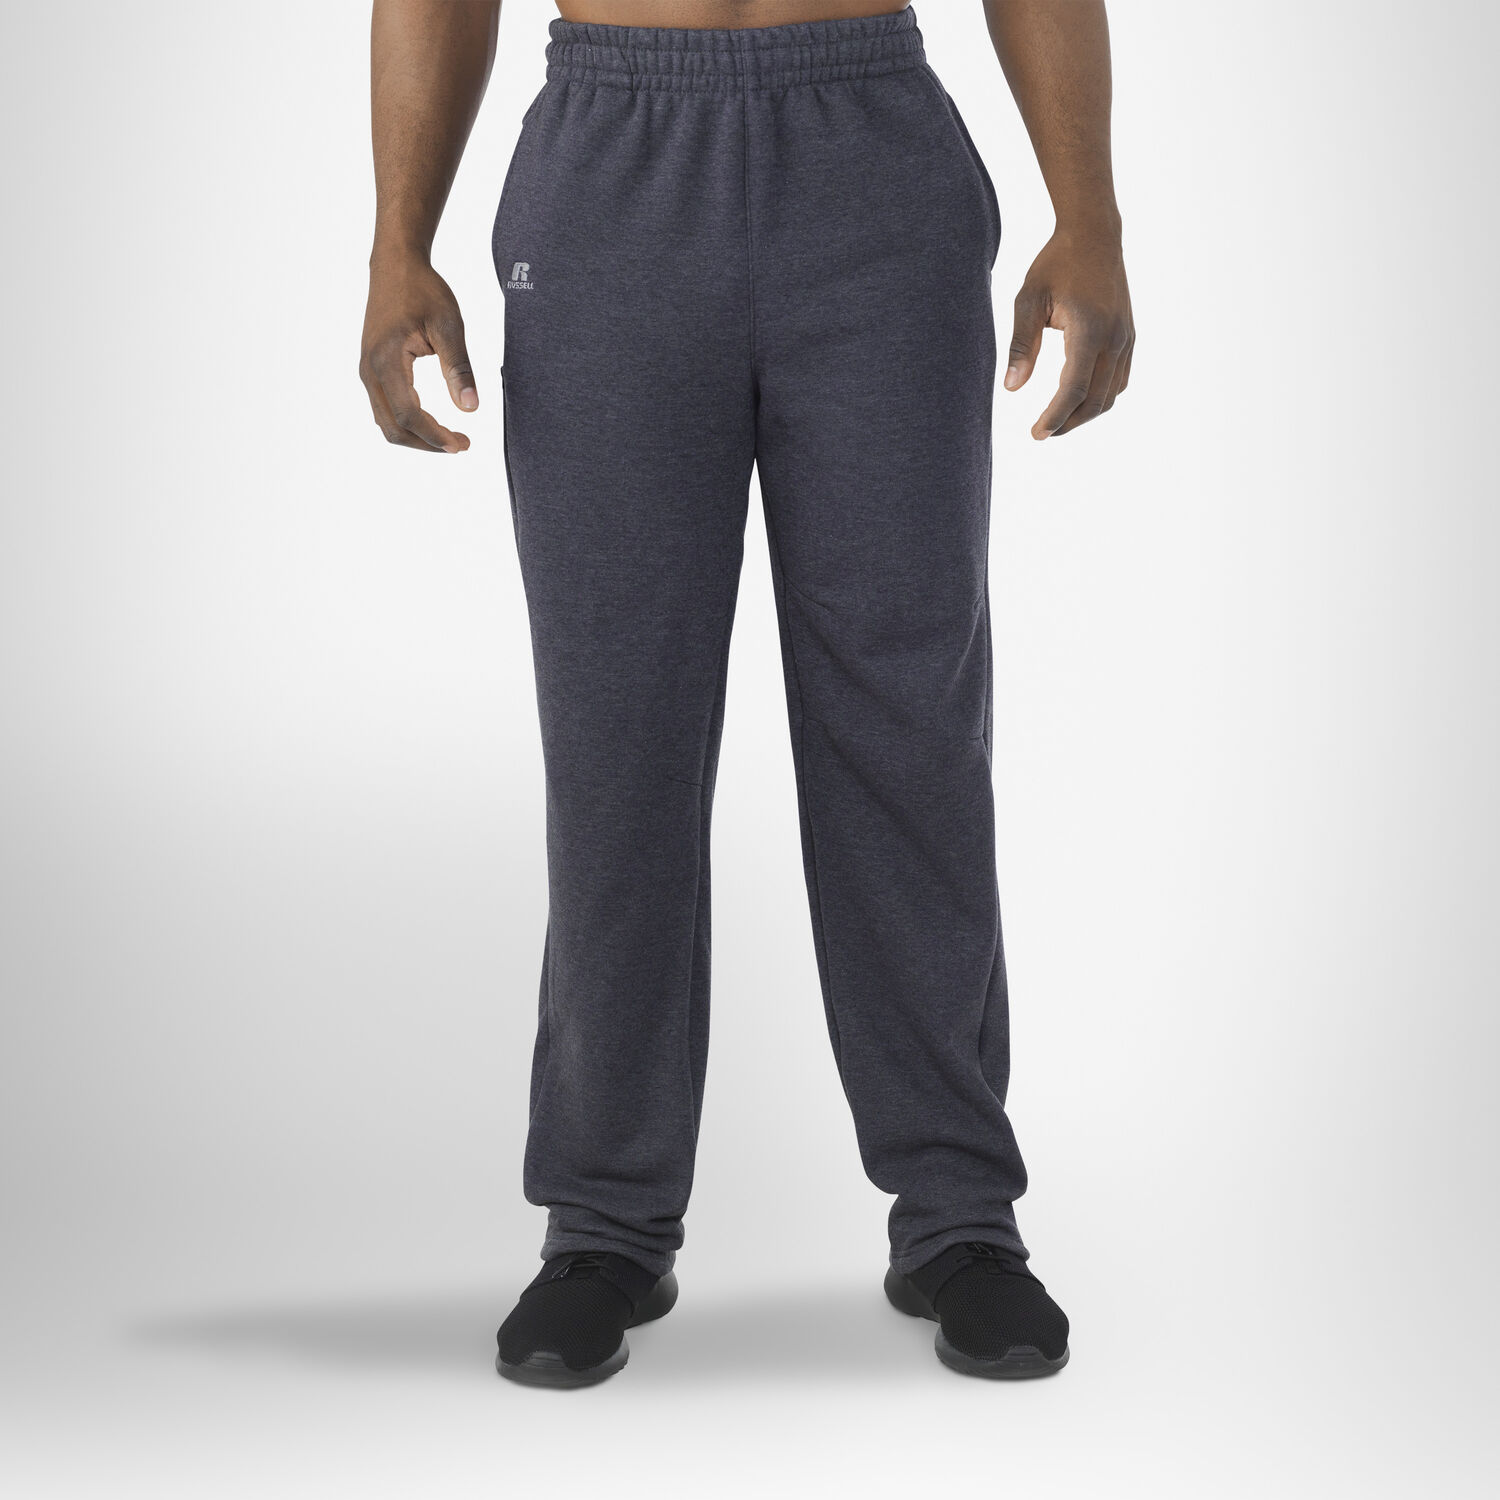 Casaul Cotton Sweat Pants with 3 Pockets for Men Women $ 29 99 Prime. 5 out of 5 stars 5. Star Wars. Boys' Star Wars Sweatpant $ 22 95 Prime. out of 5 stars 5. KalvonFu. Men's Cotton Causal Elastic Waistband Home Sweatpant with Pockets. from $ 13 99 Prime. out of 5 stars MV Sport. Ladies' Angel Fleece Sanded Pant.